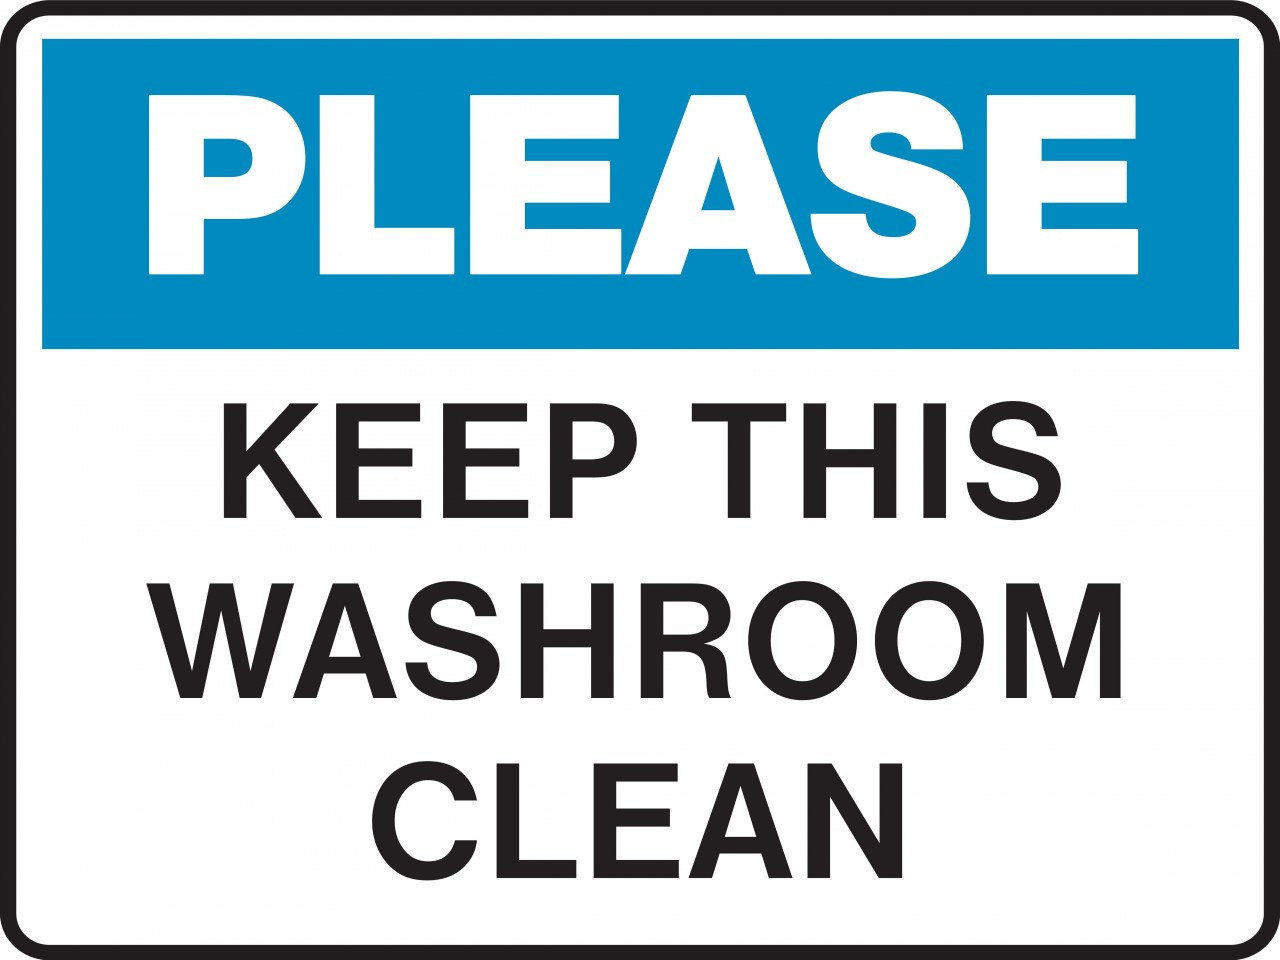 Please Keep The Kitchen And Bathroom Clean